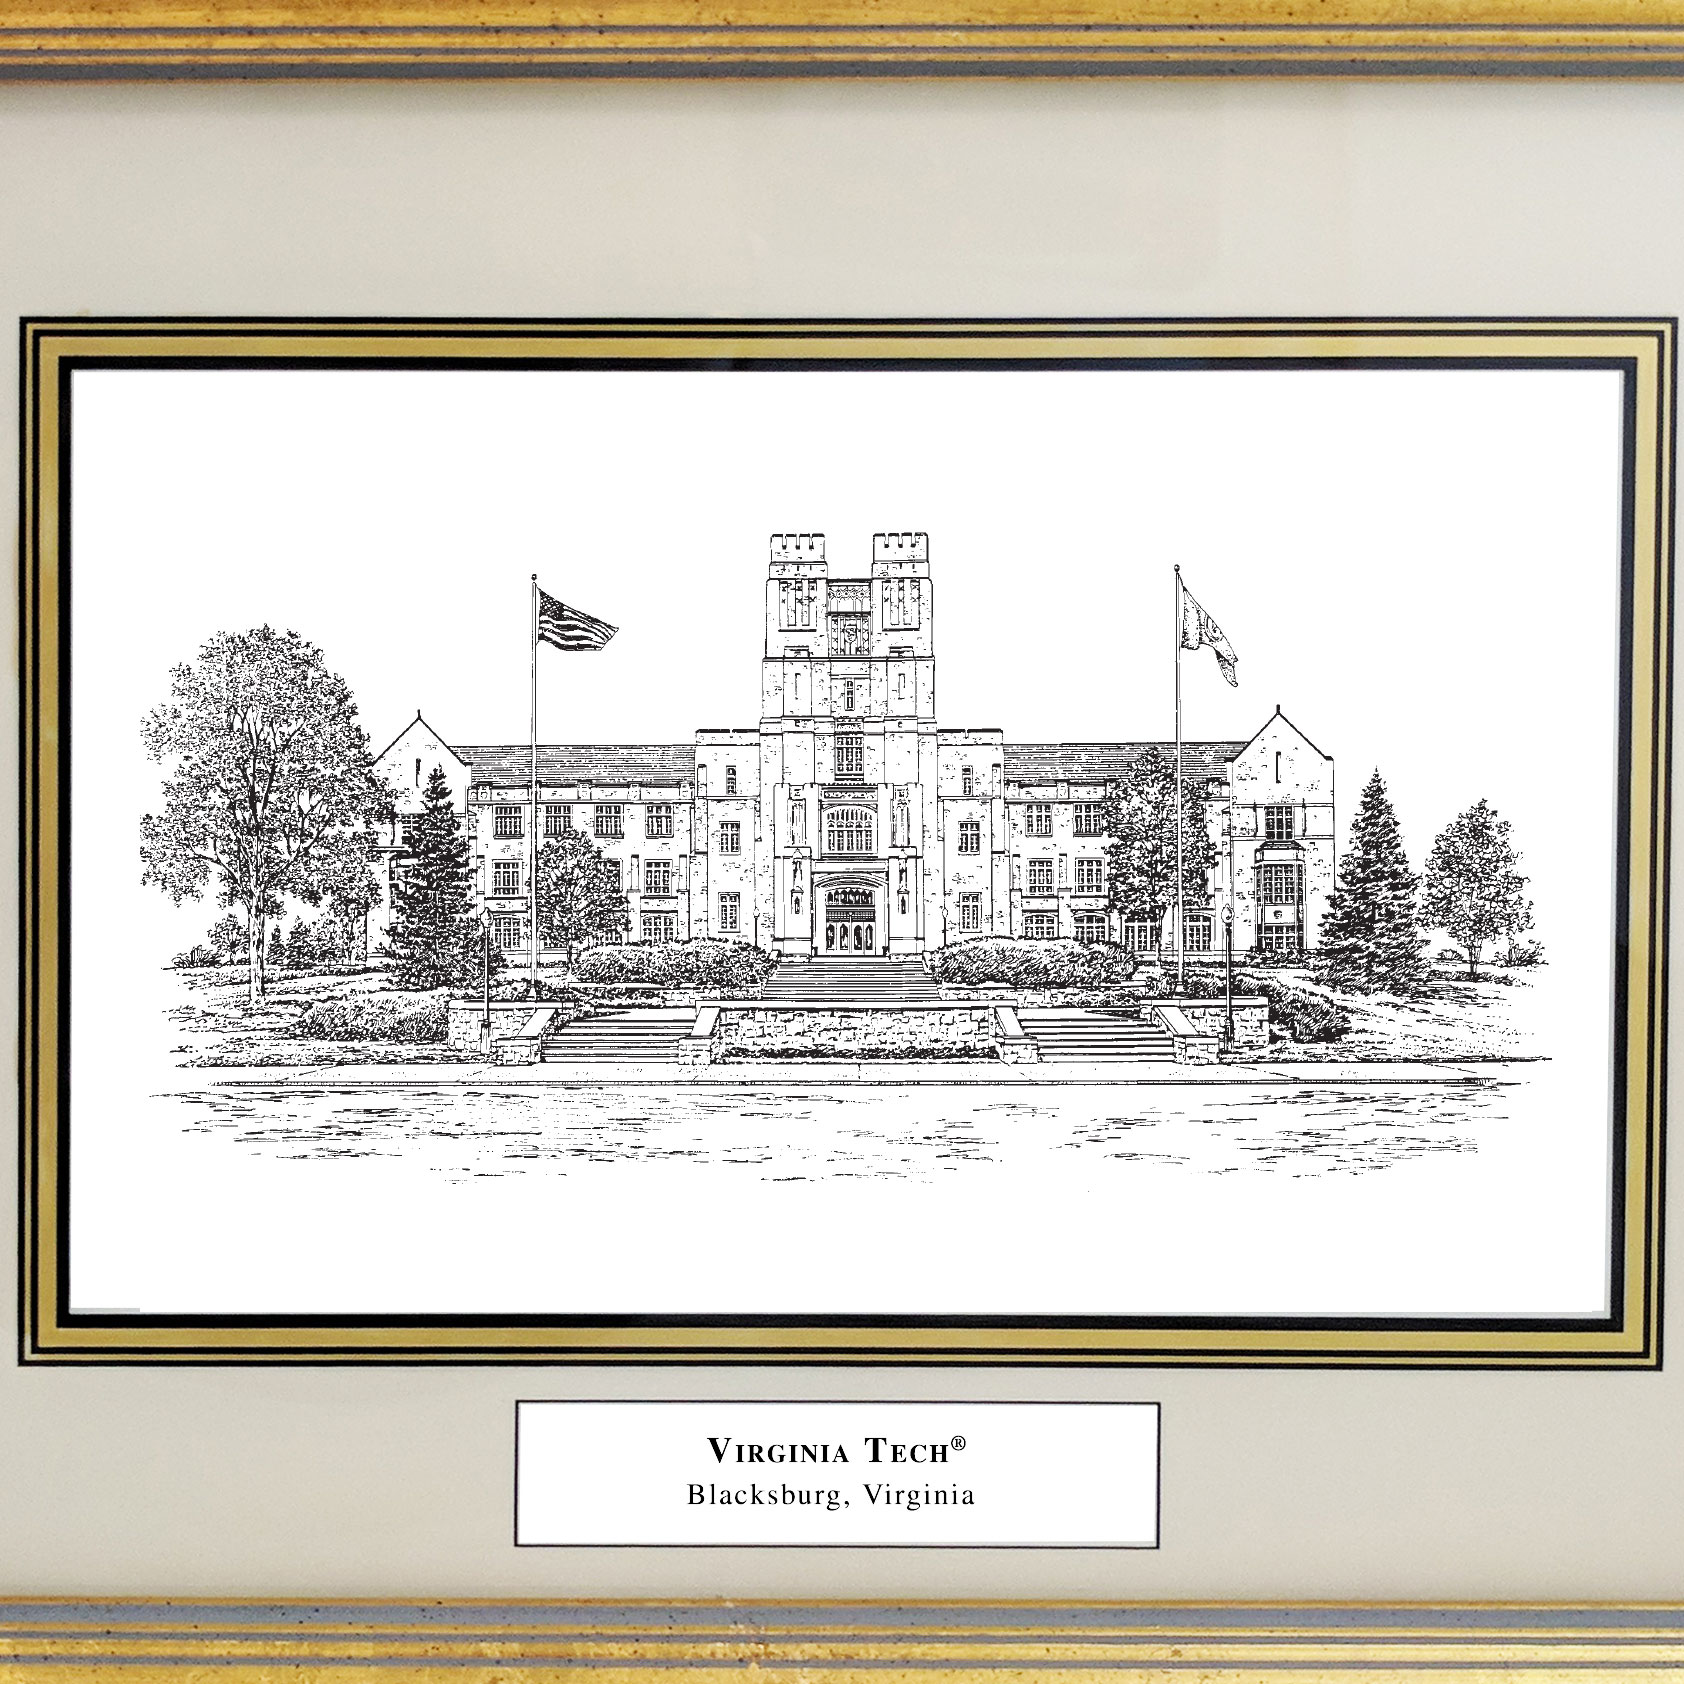 Framed Pen and Ink Virginia Tech Print - Image 2